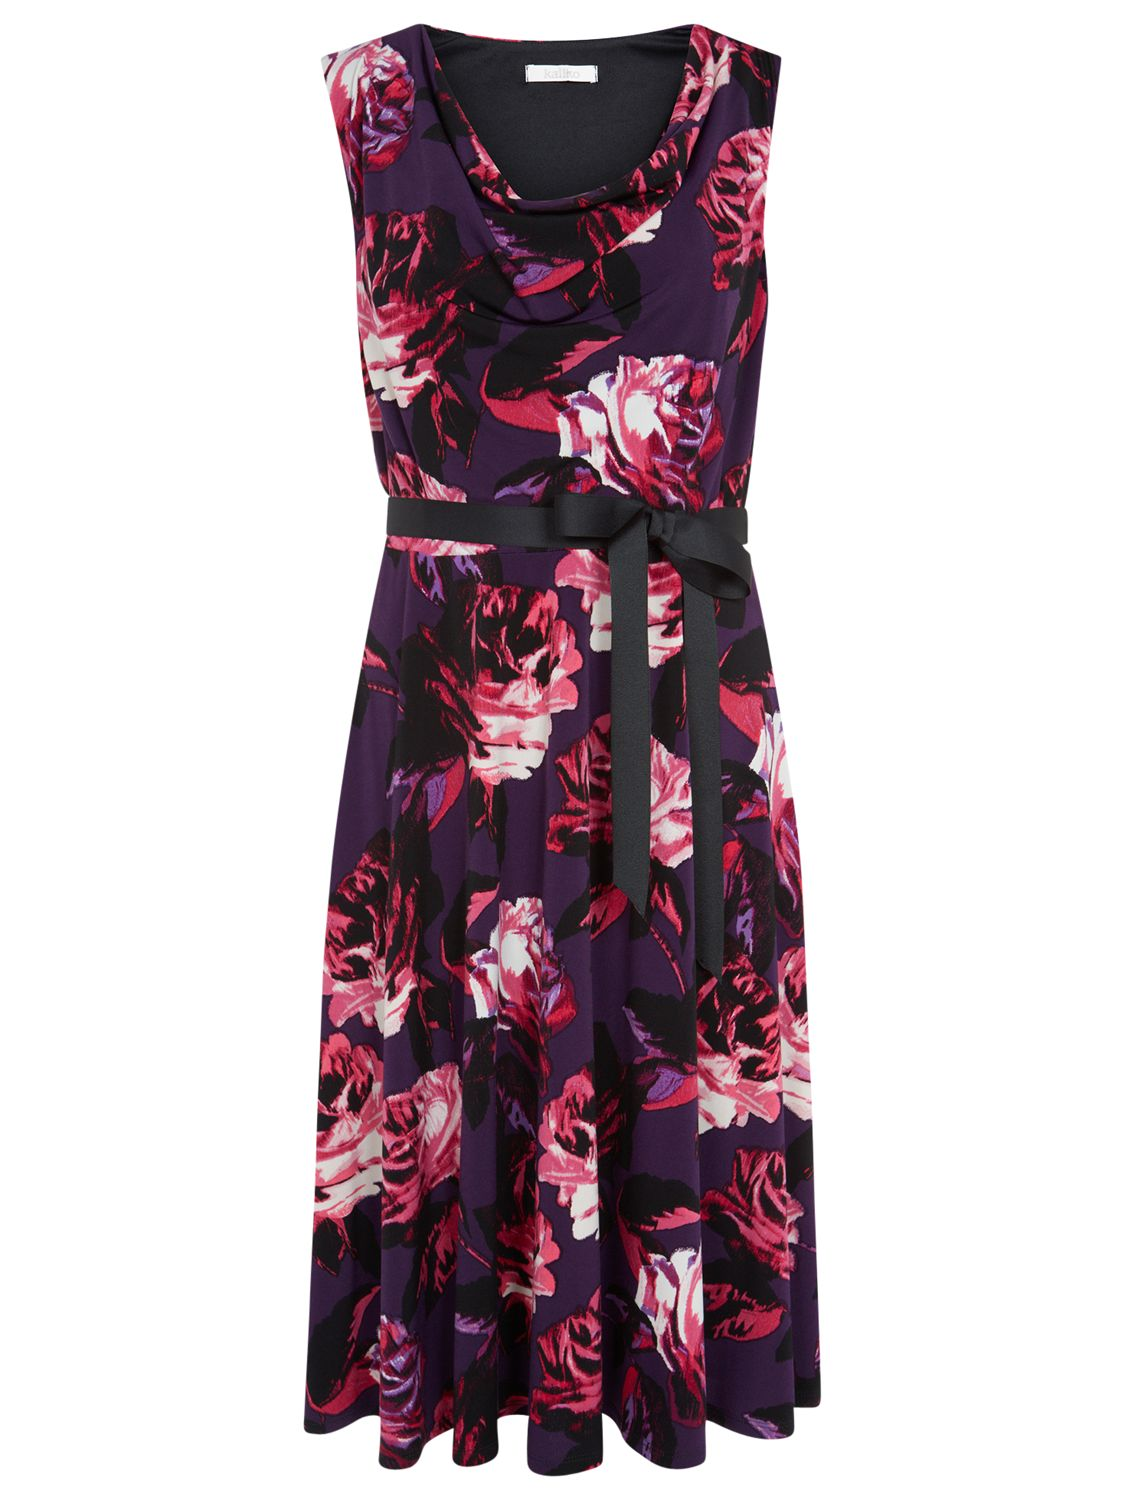 kaliko rose print dress berry, kaliko, rose, print, dress, berry, 18|10|12|14|8|16, clearance, womenswear offers, womens dresses offers, special offers, 20% off selected kaliko, women, plus size, inactive womenswear, new reductions, womens dresses, 1703645